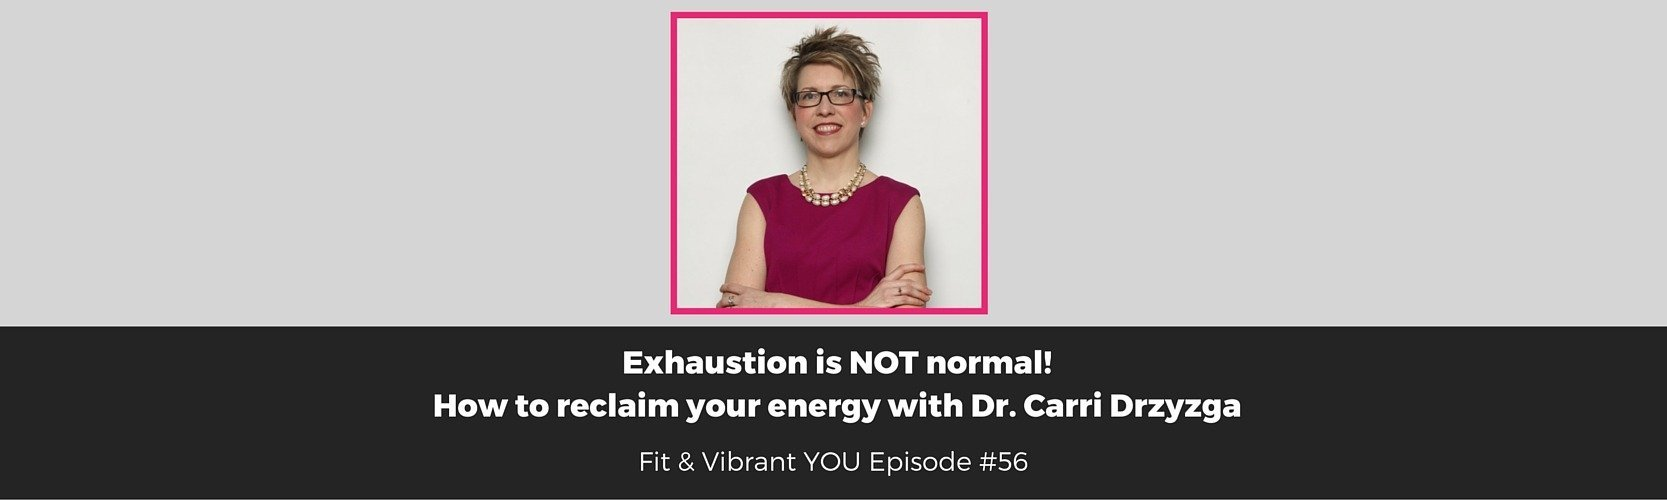 FVY 56: Exhaustion is NOT normal!  How to reclaim your Energy with Dr. Carri Drzyzga